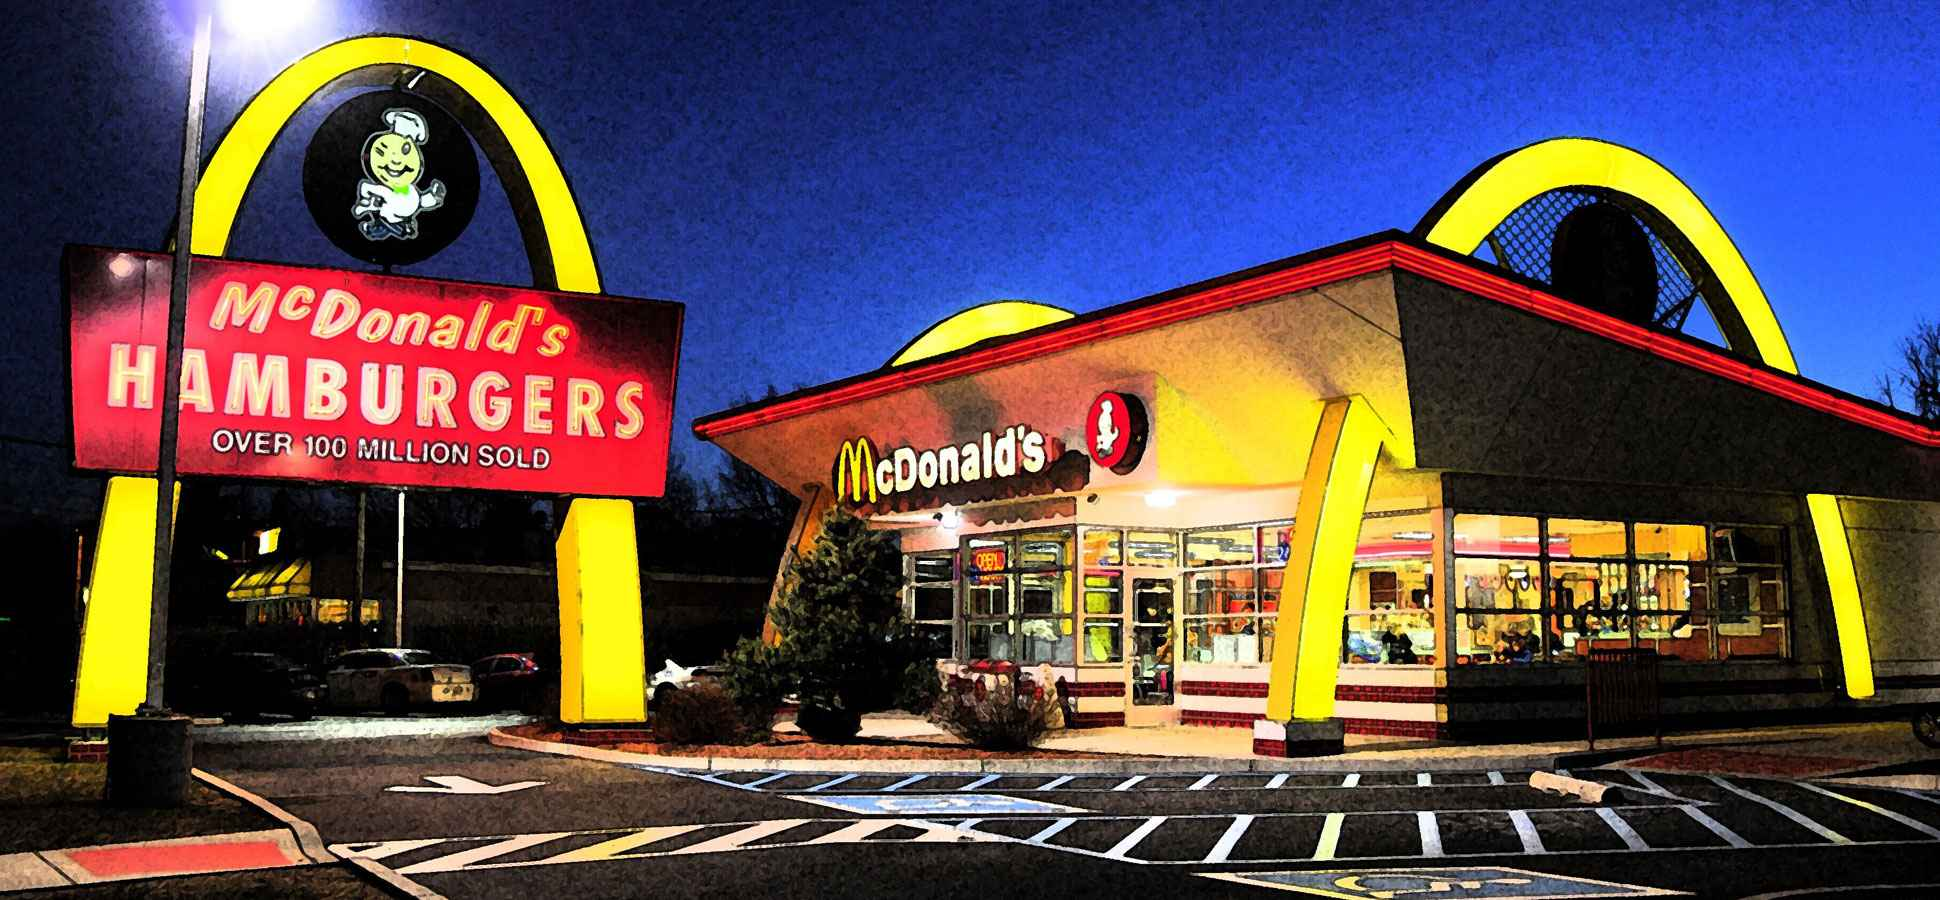 McDonald's Made a Major Marketing Faux Pas